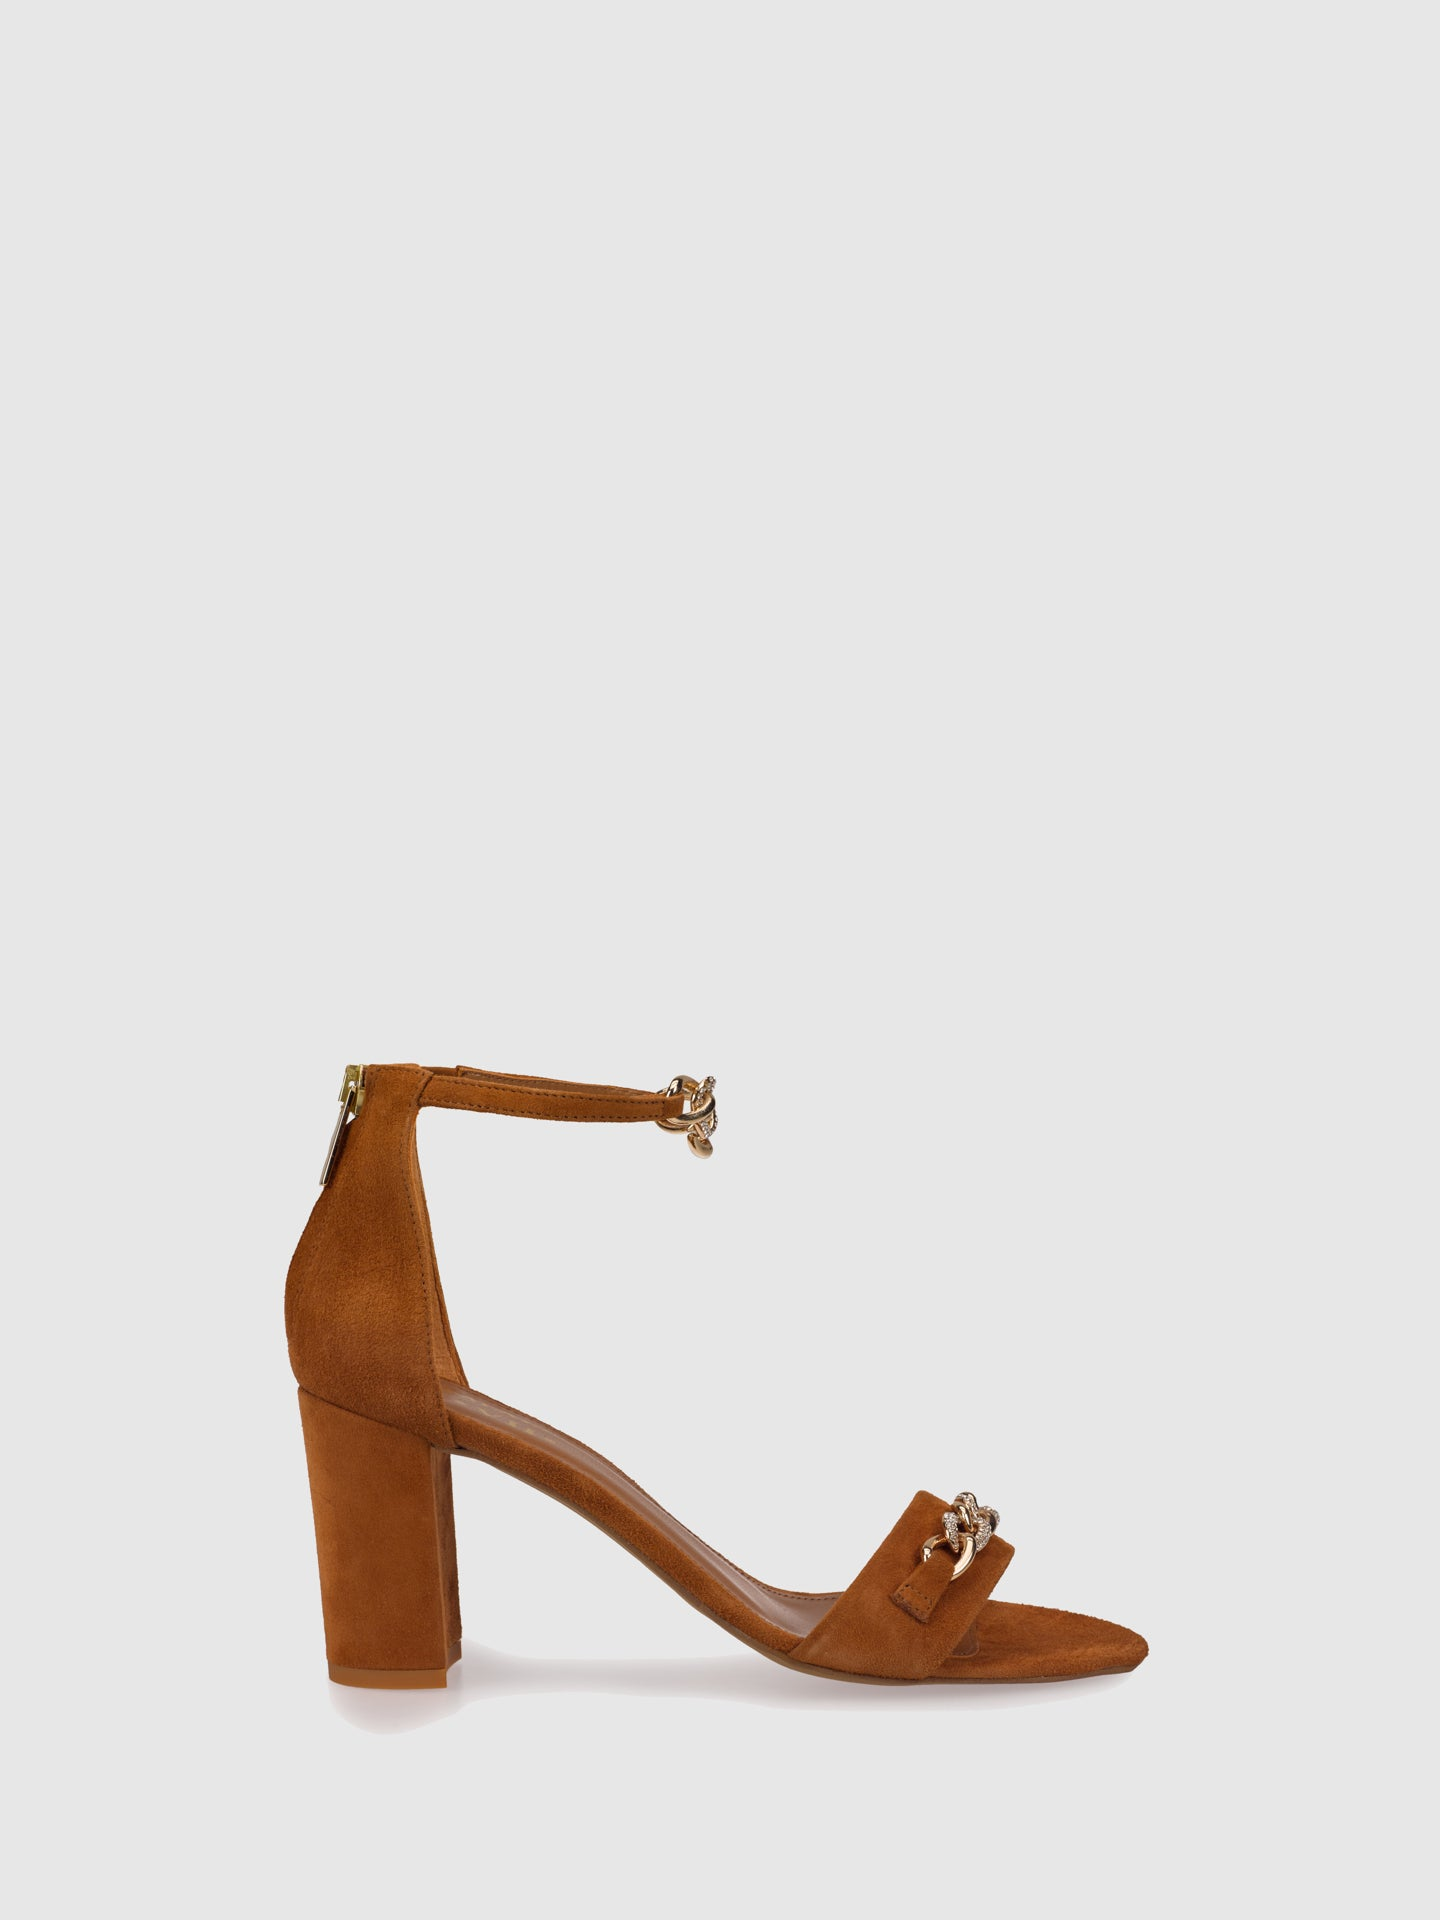 Palazzo VII Brown Ankle Strap Sandals